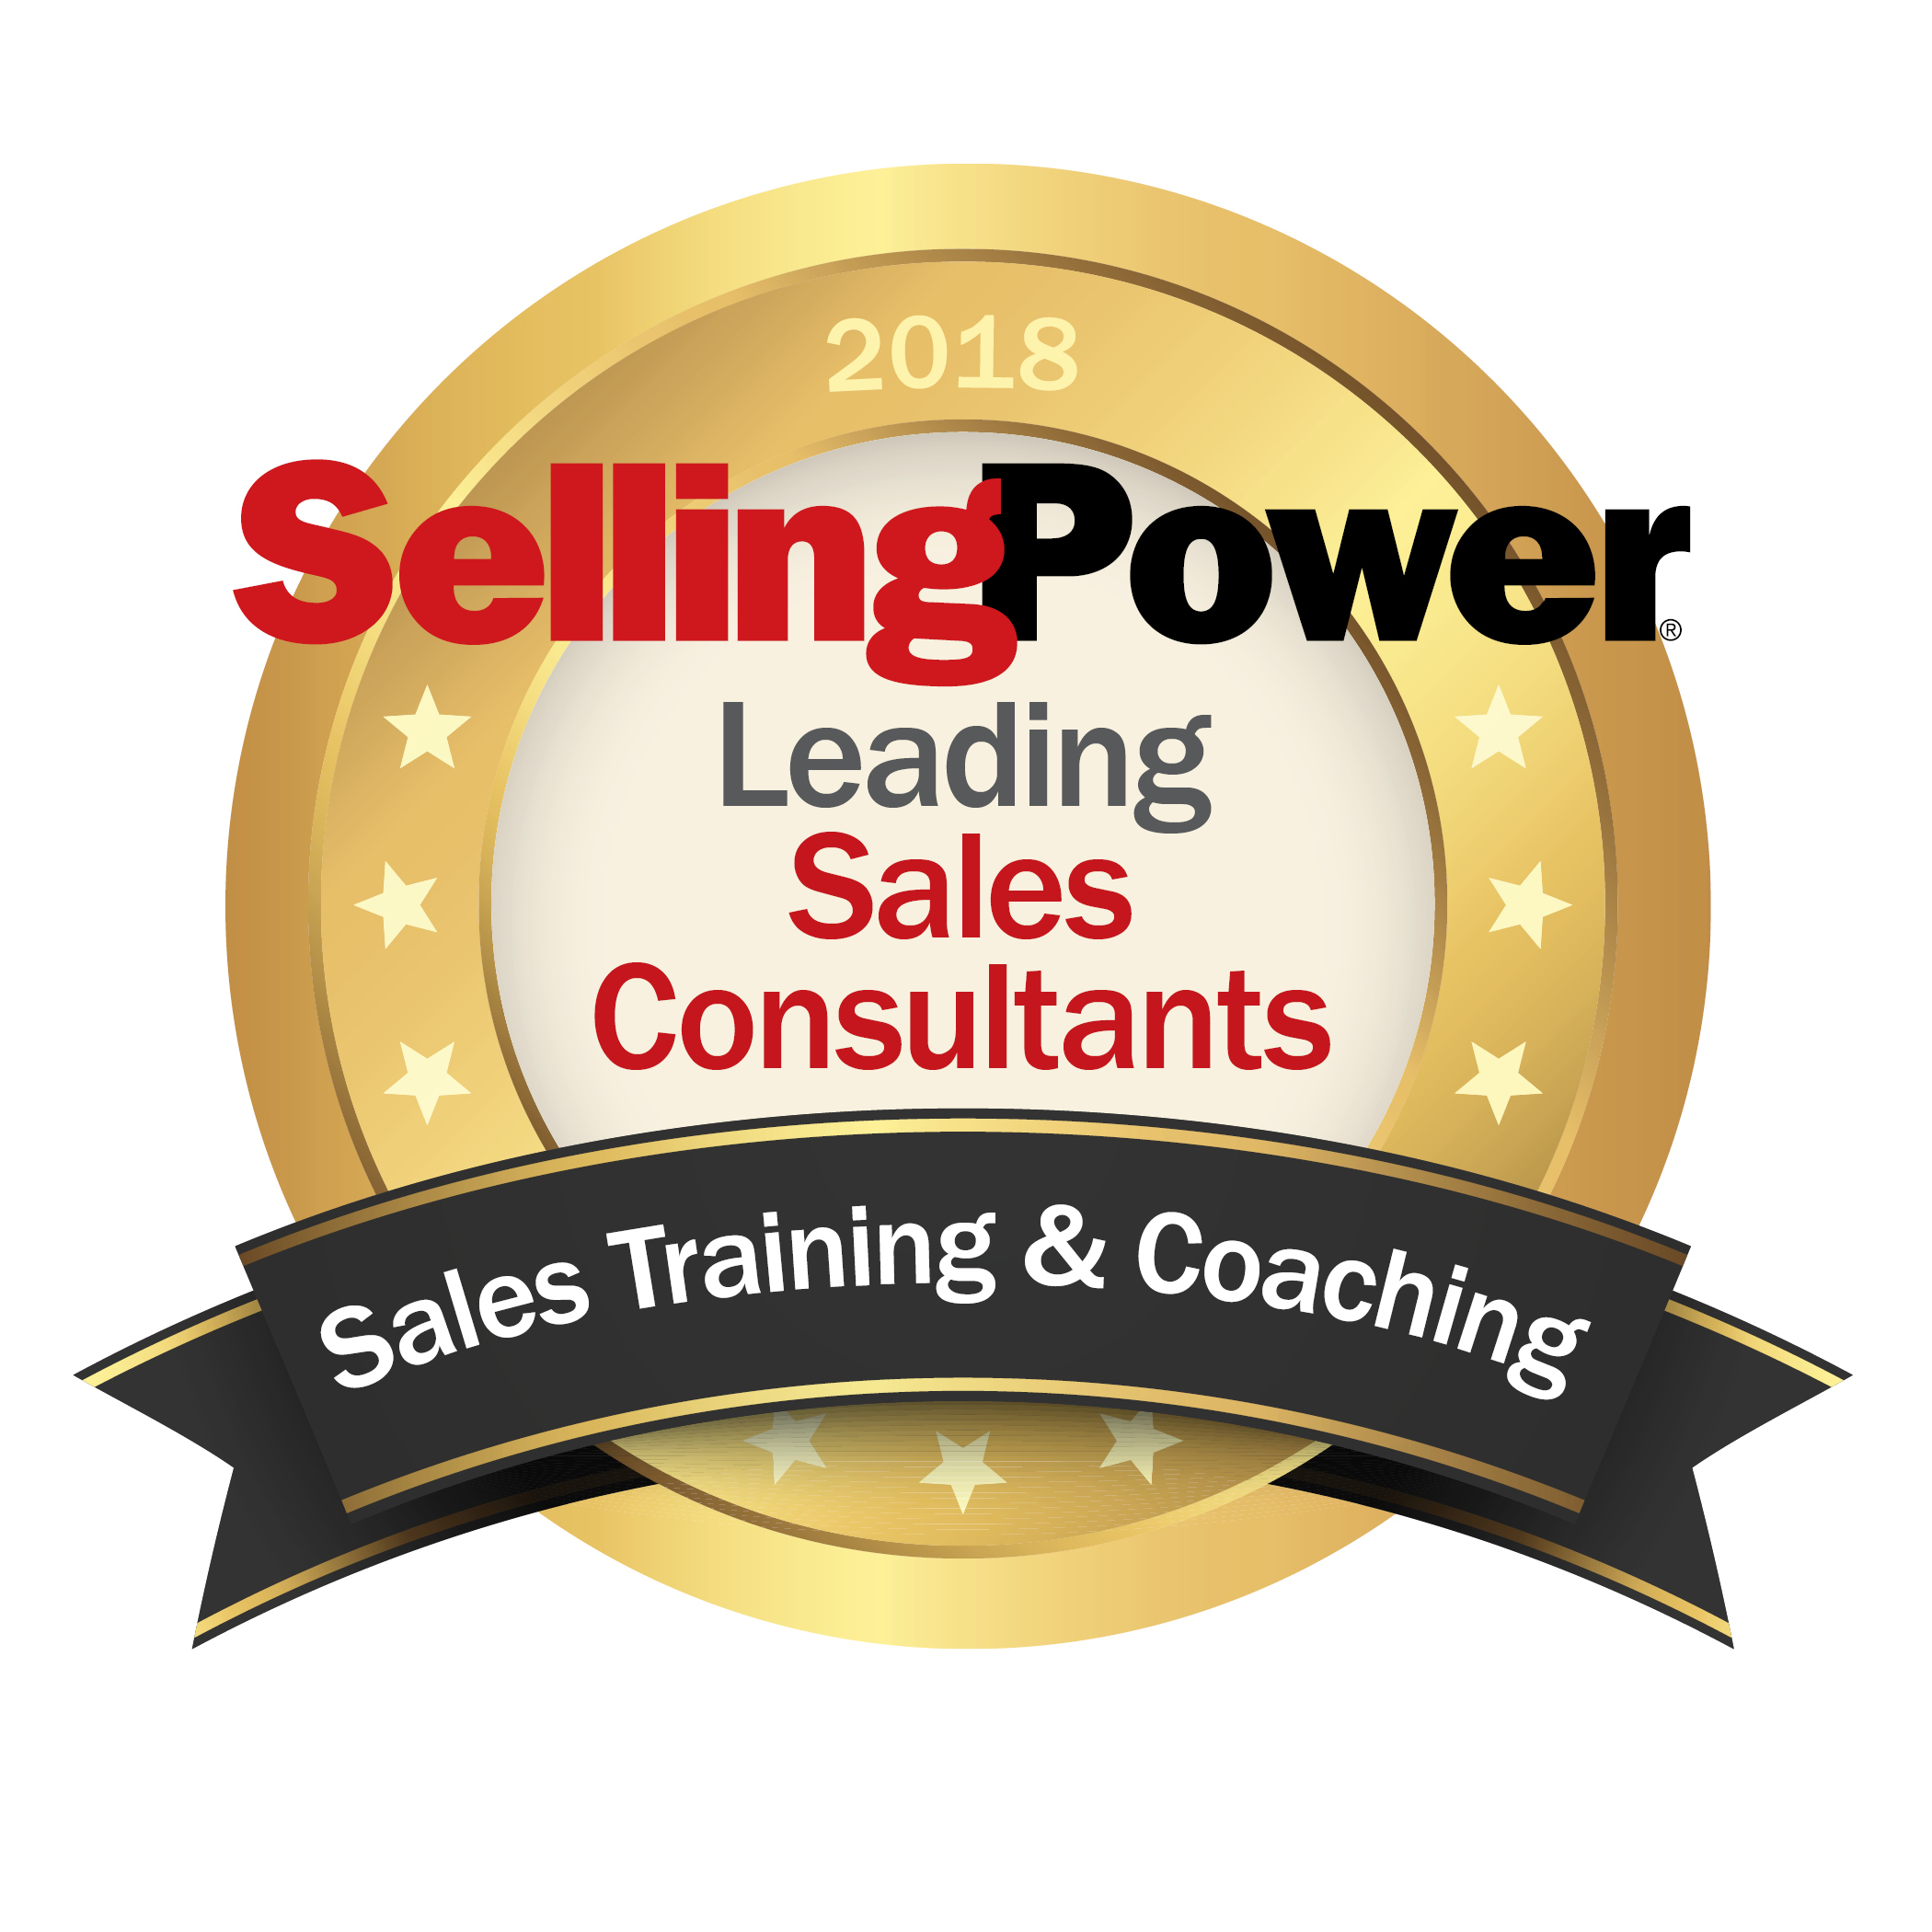 Leading Sales Consultants 2018 8211 Sales Training 038